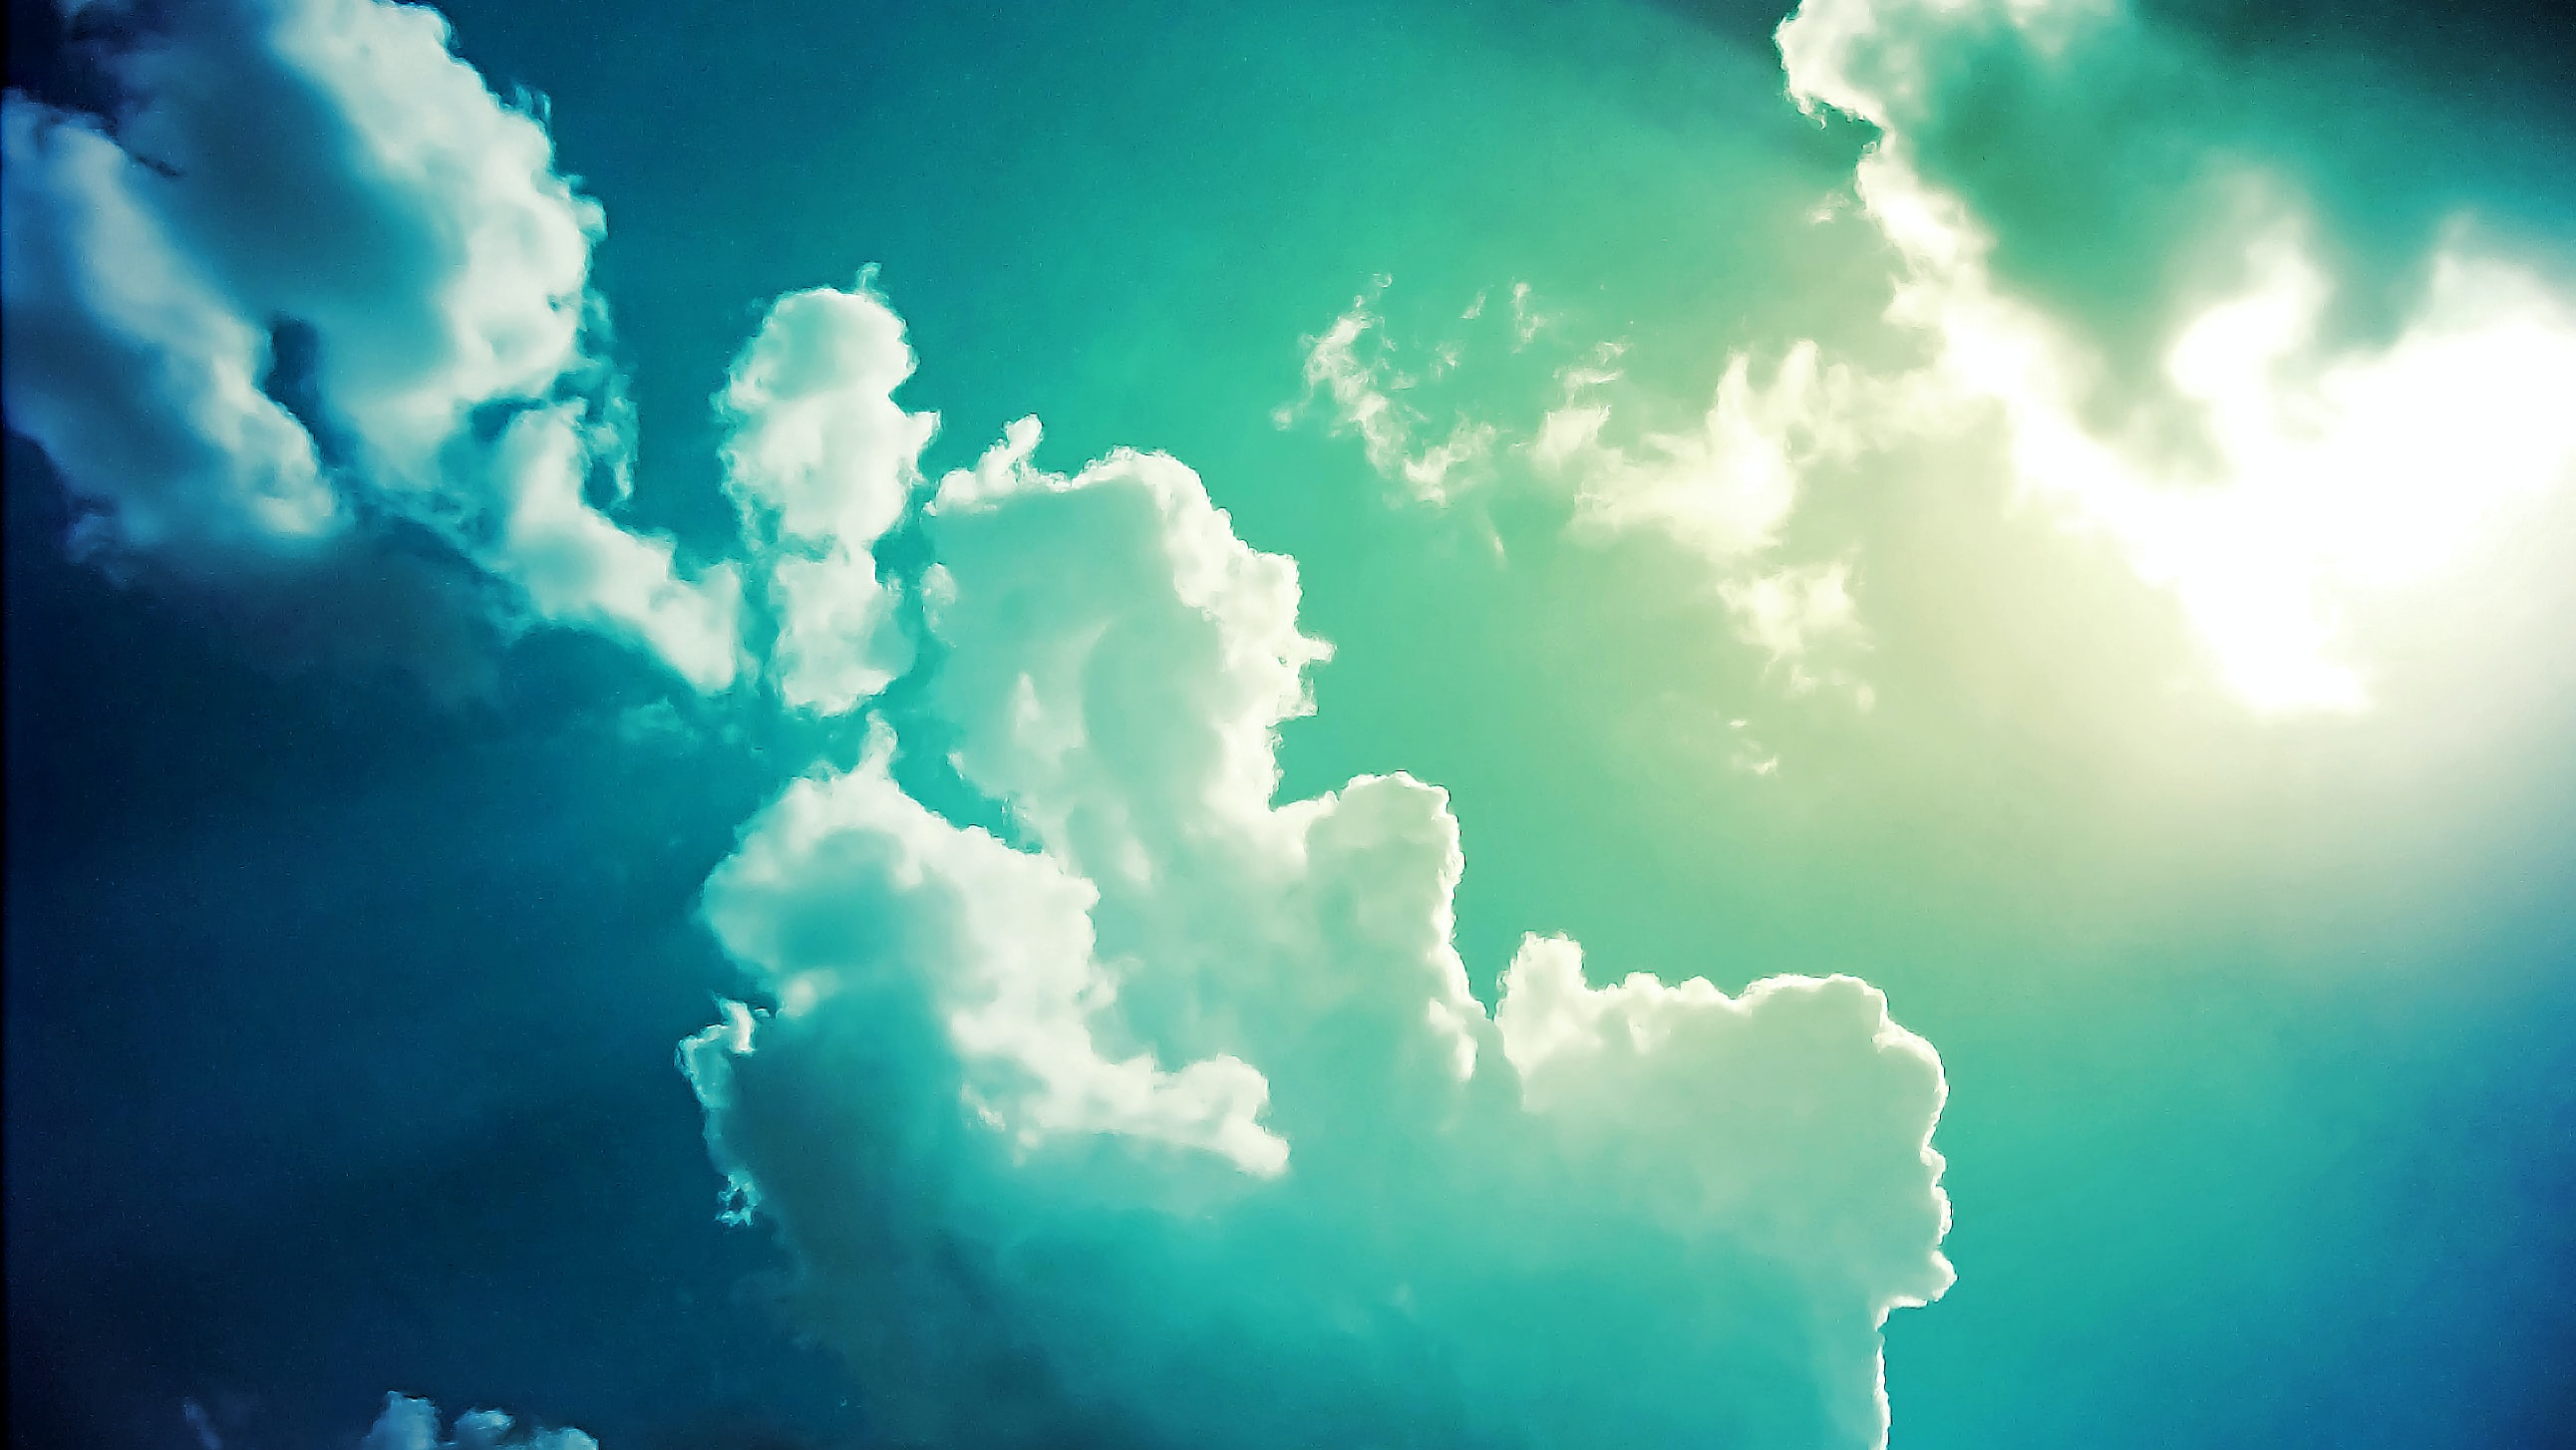 white clouds and blue skies with sunrays